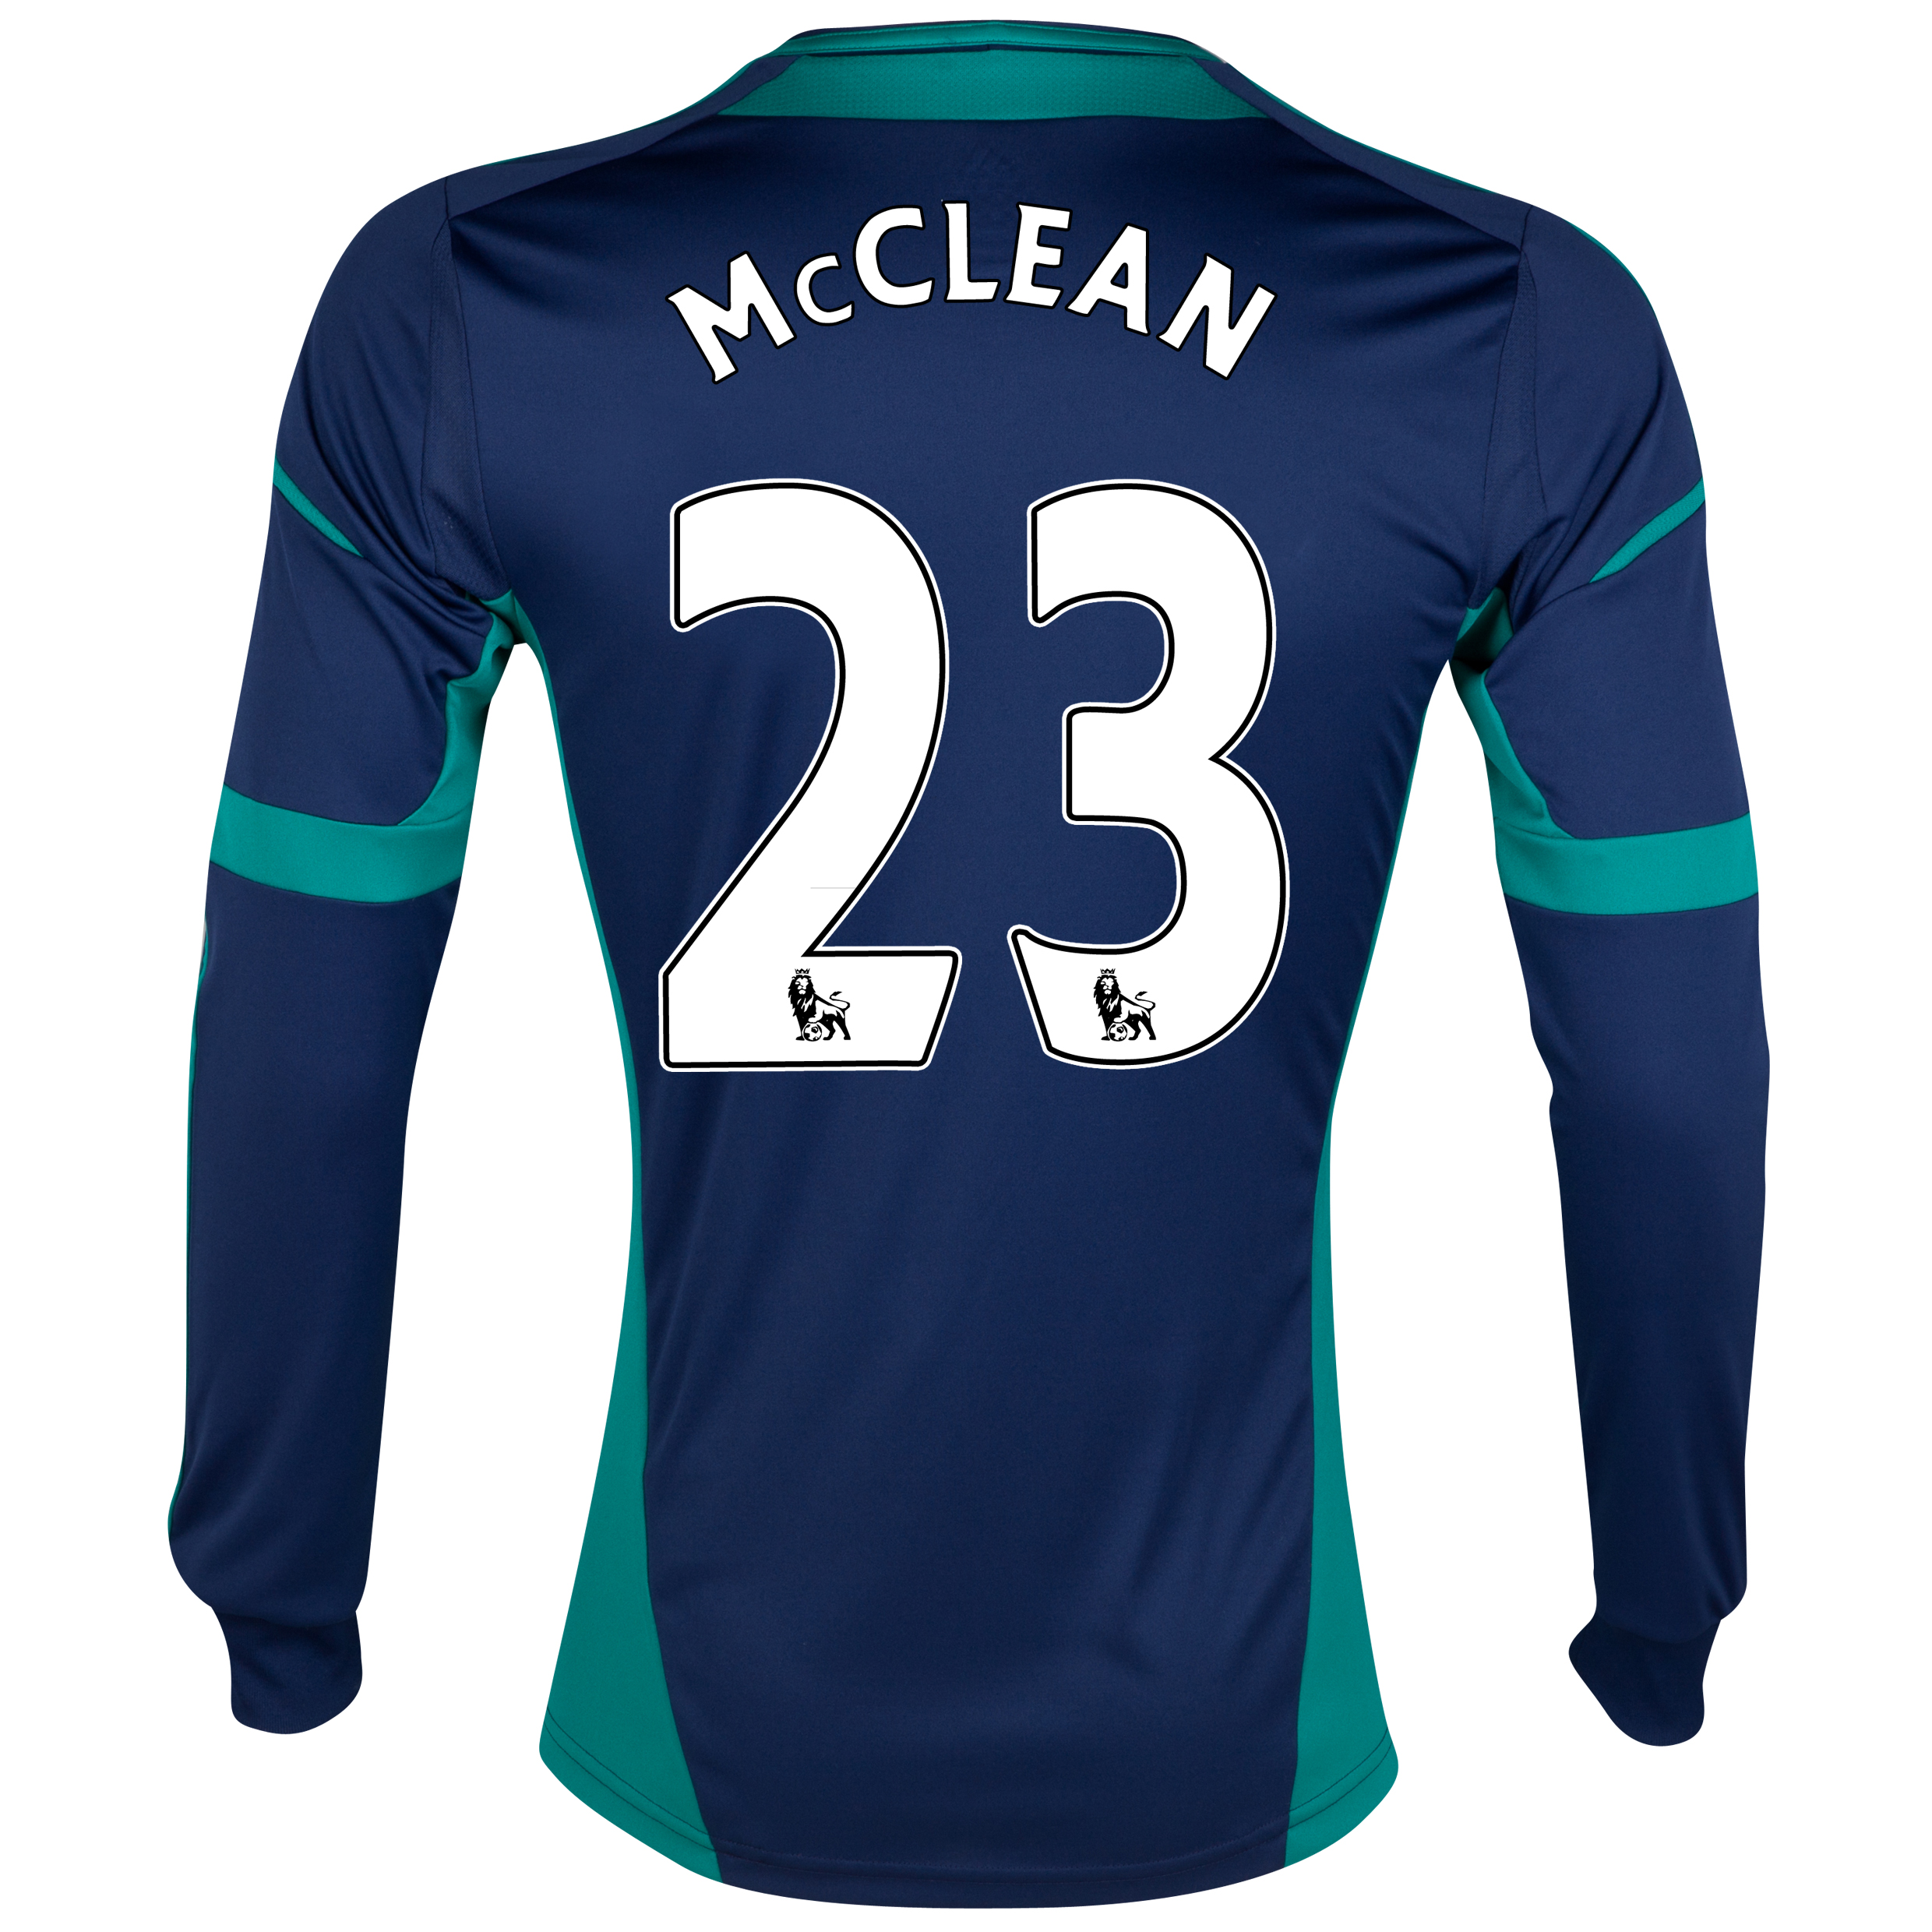 Sunderland Away Shirt 2012/13 - Long Sleeved with McClean 23 printing